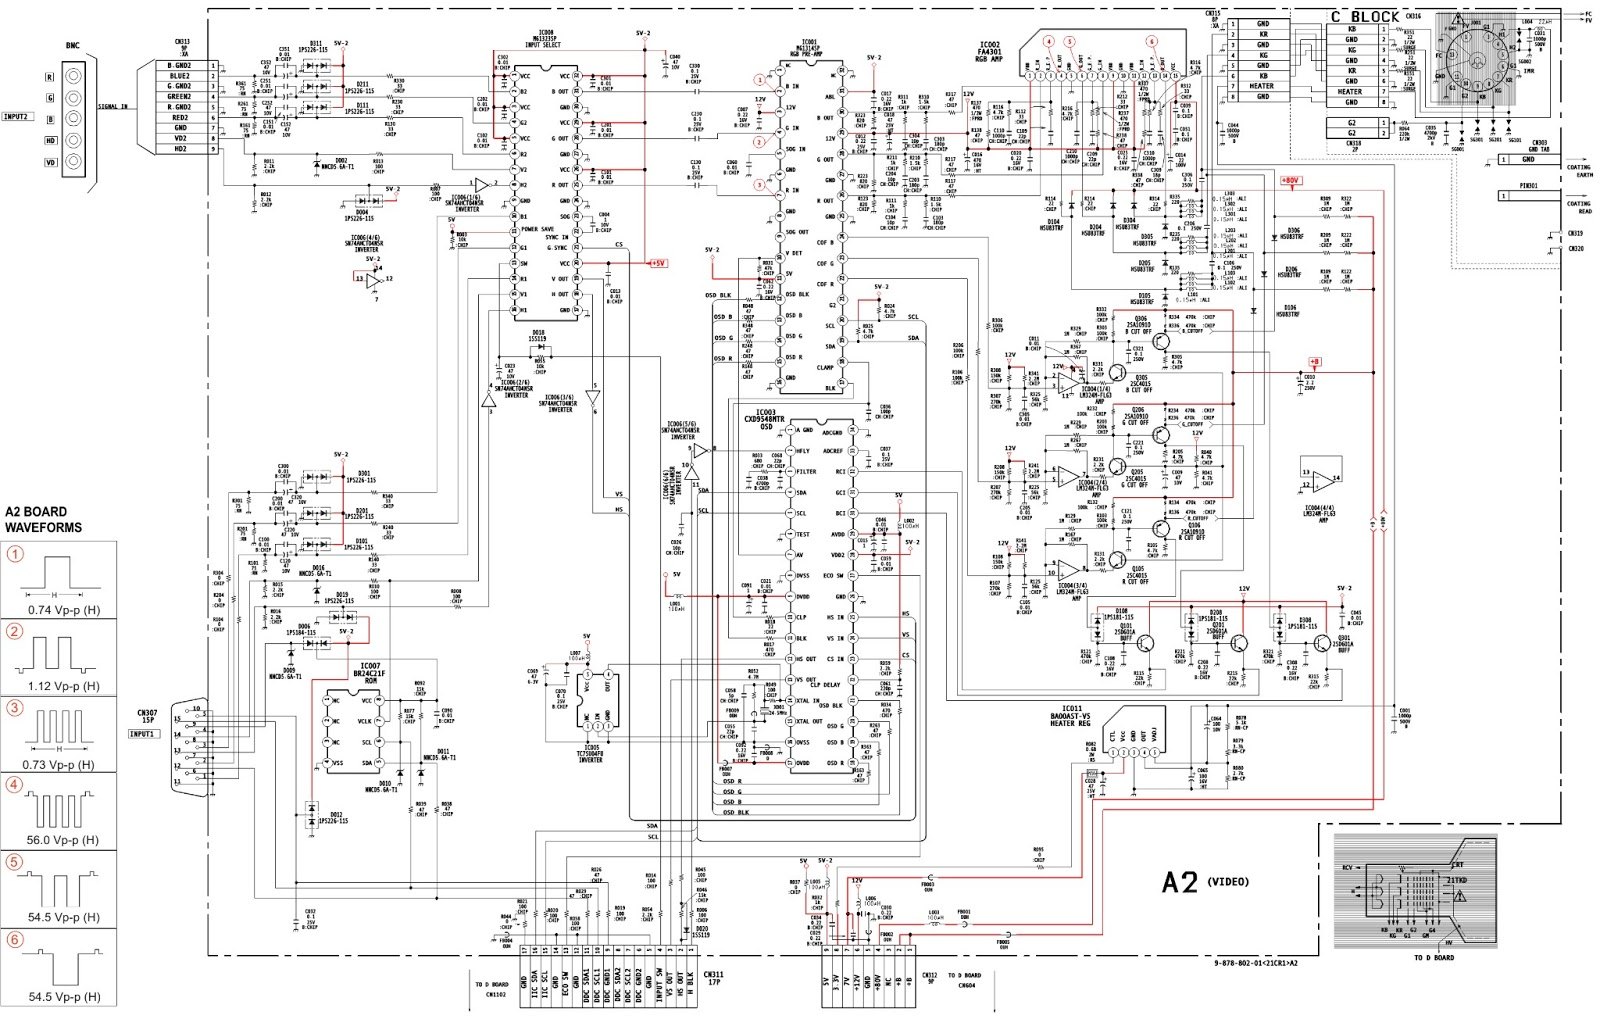 Ps4 Controller Schematic Pictures to Pin on Pinterest